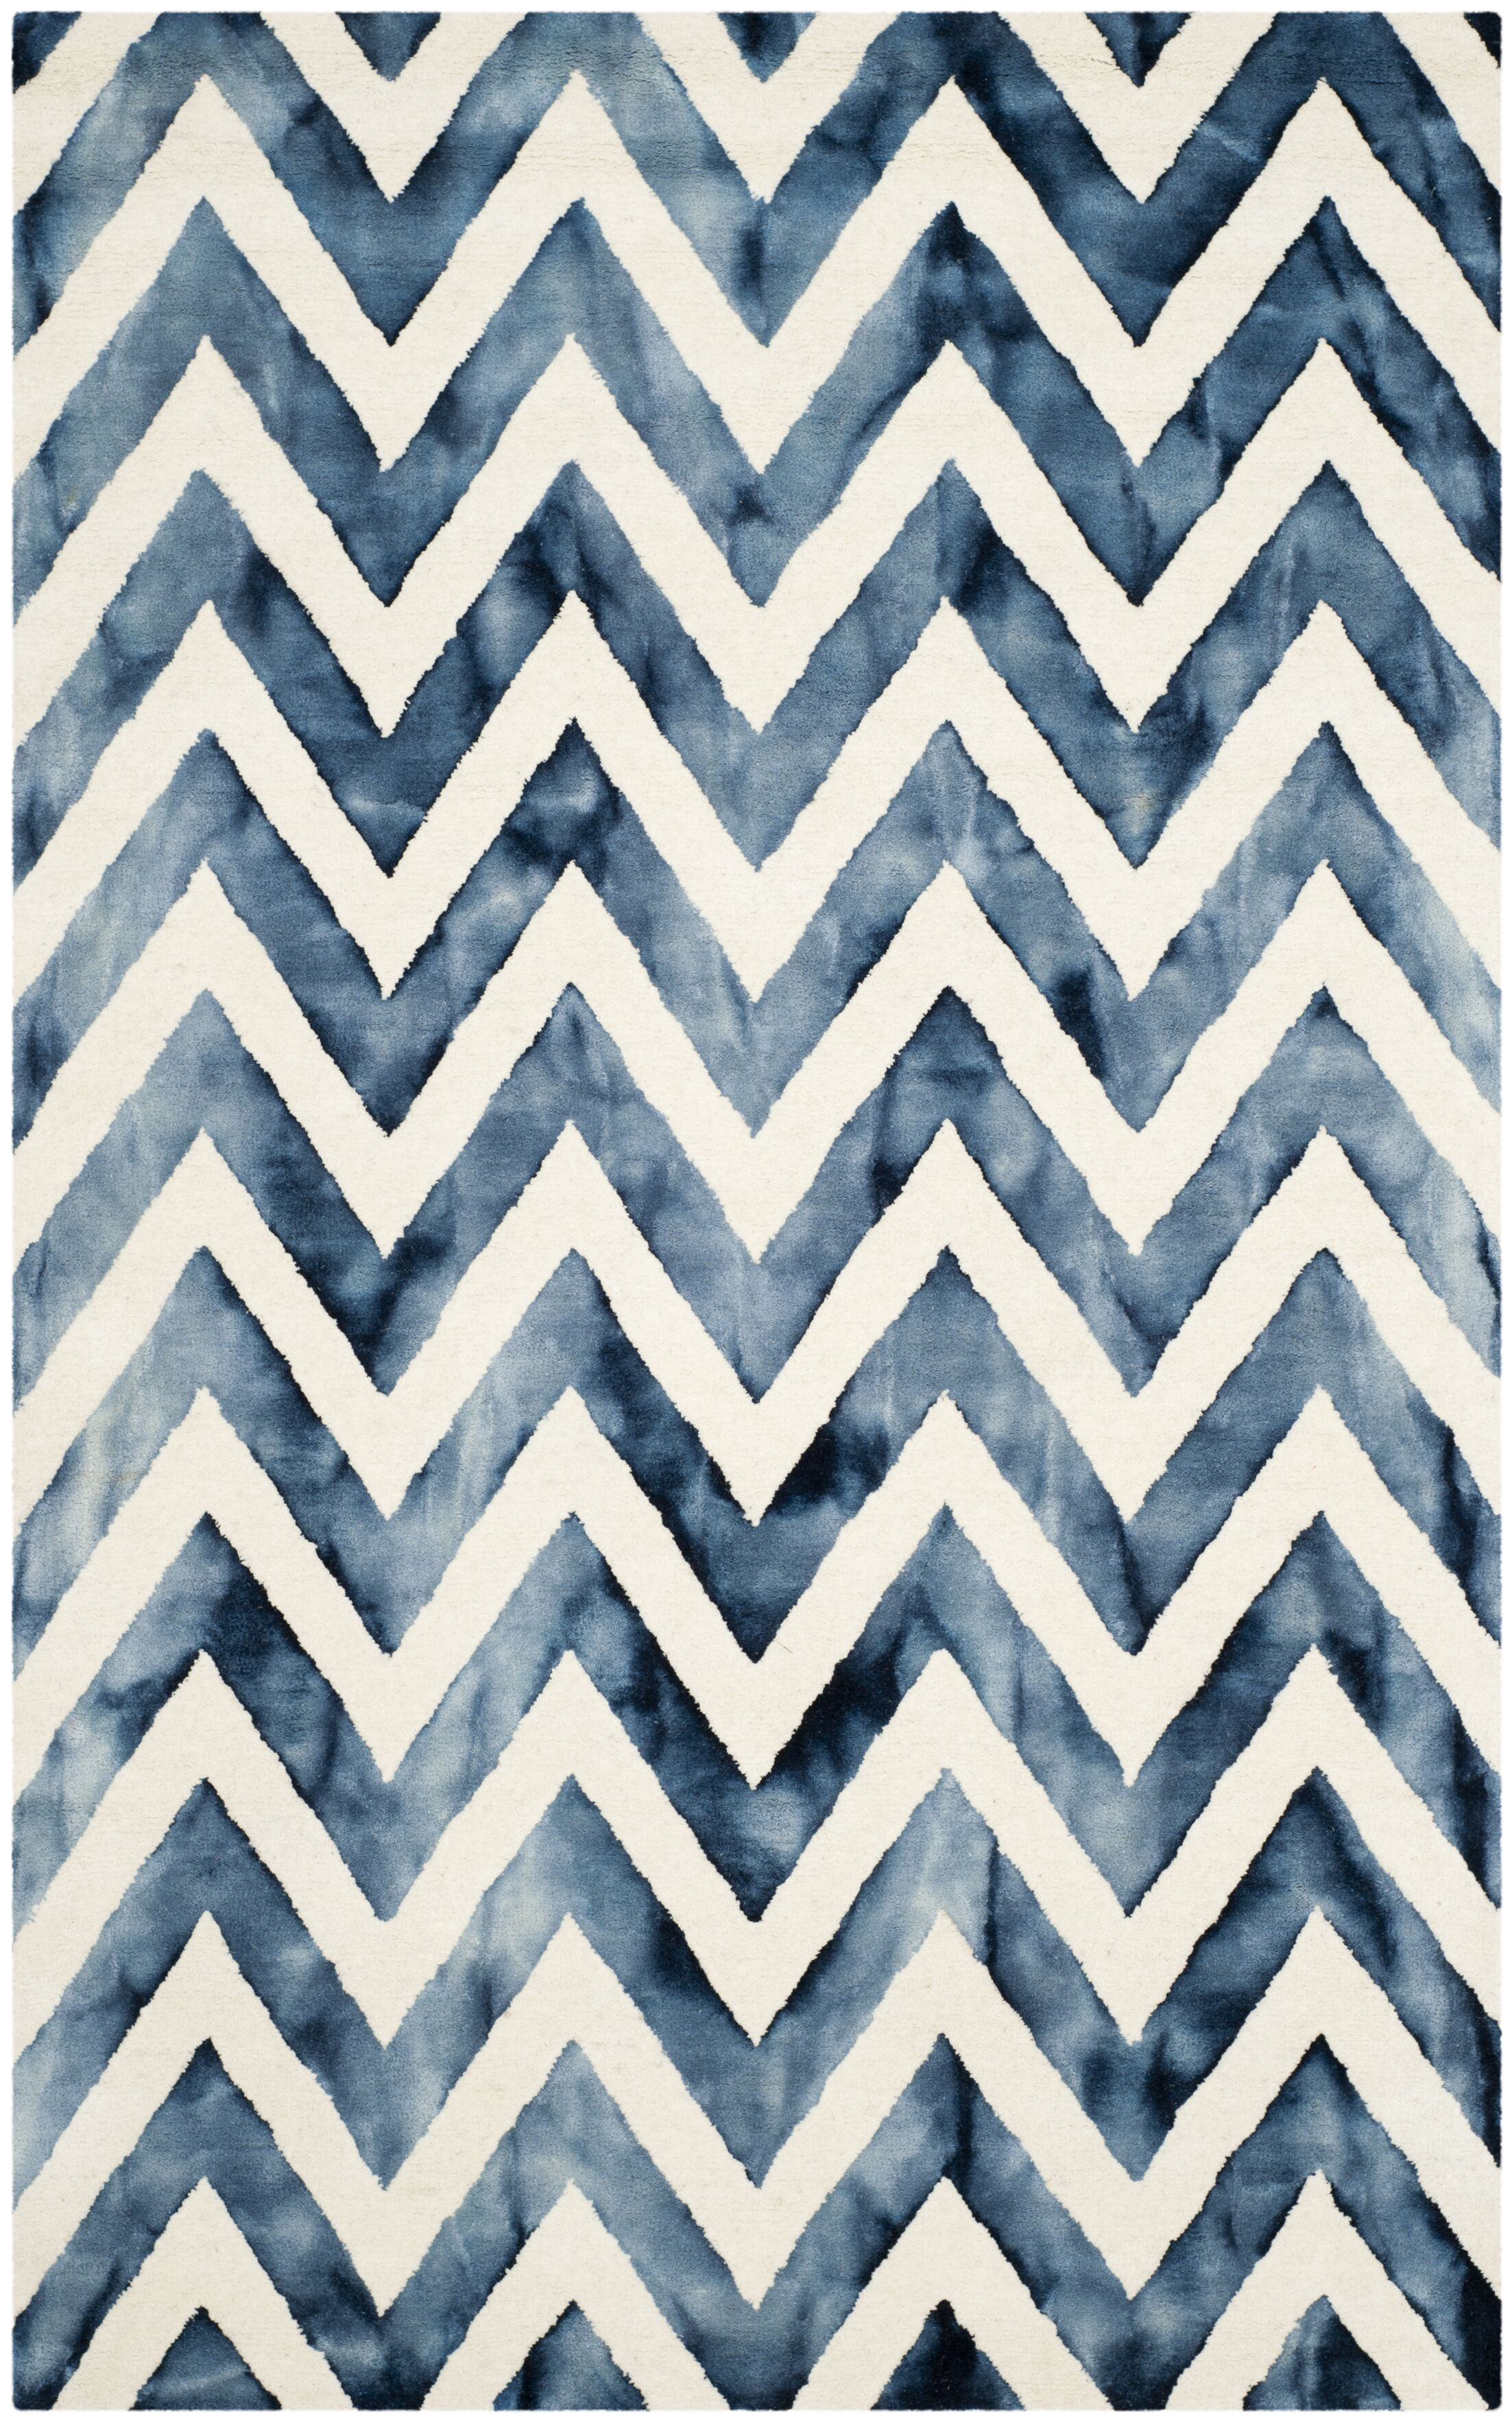 Crux Hand-Tufted Ivory & Navy Area Rug Rug Size: Rectangle 3' x 5'